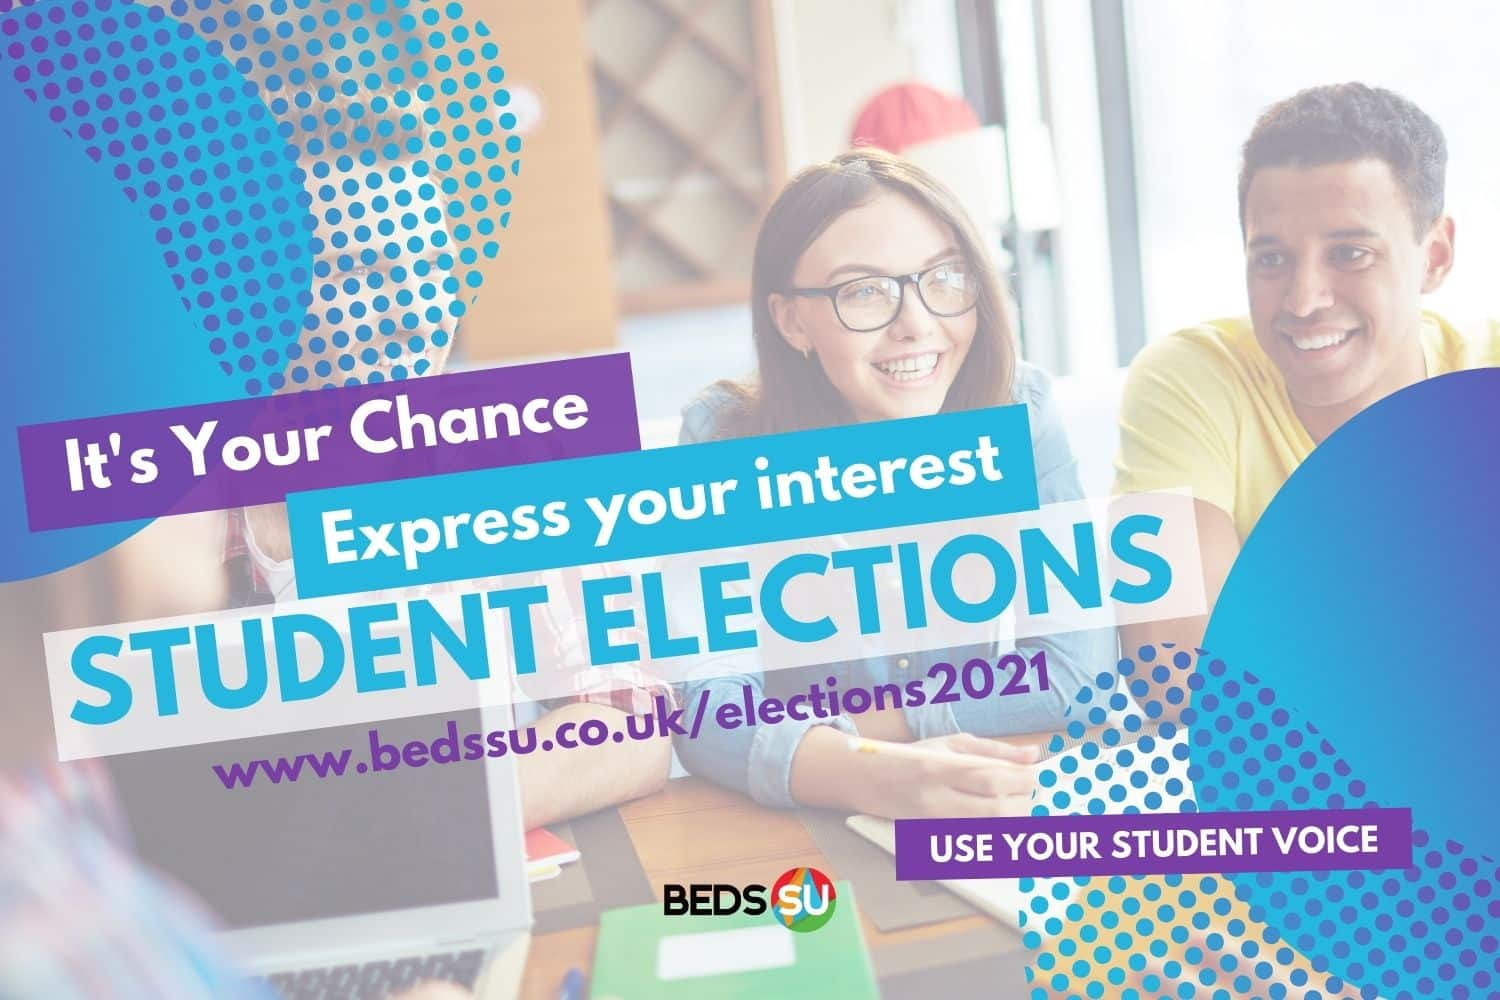 Beds SU Student Elections - Express Your Interest